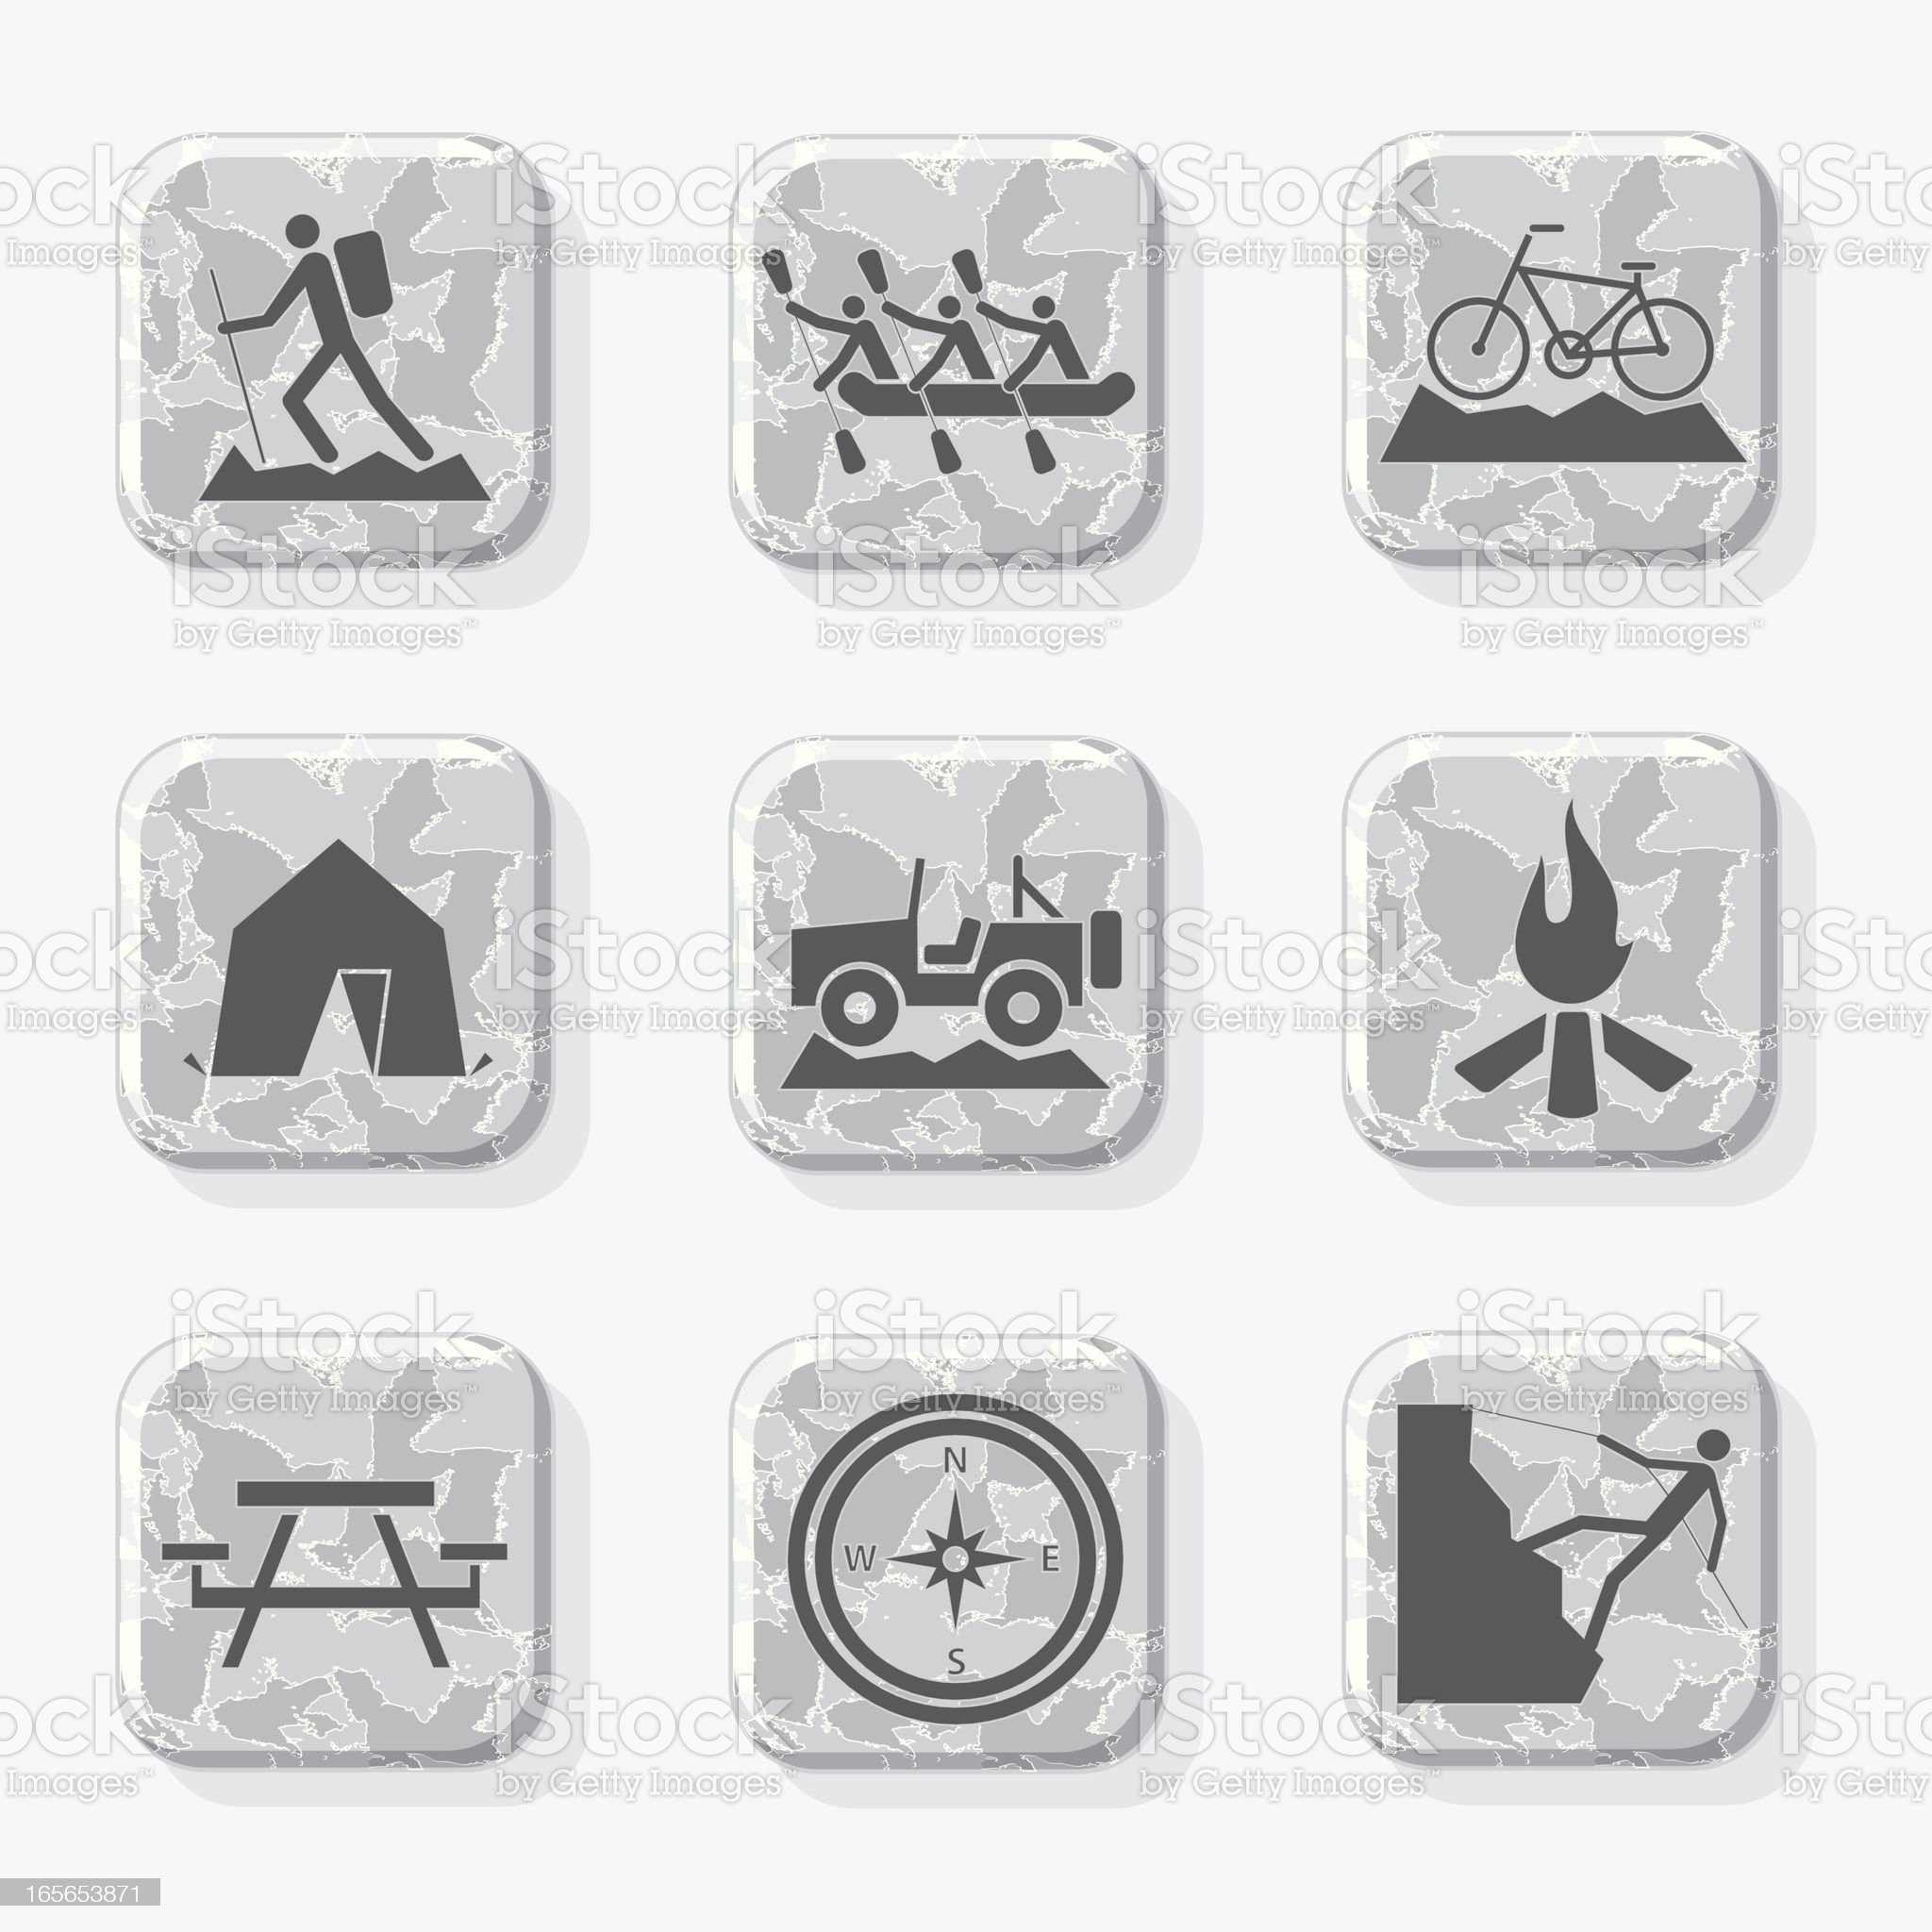 Outdoor Activities Icons in Black and White royalty-free stock vector art